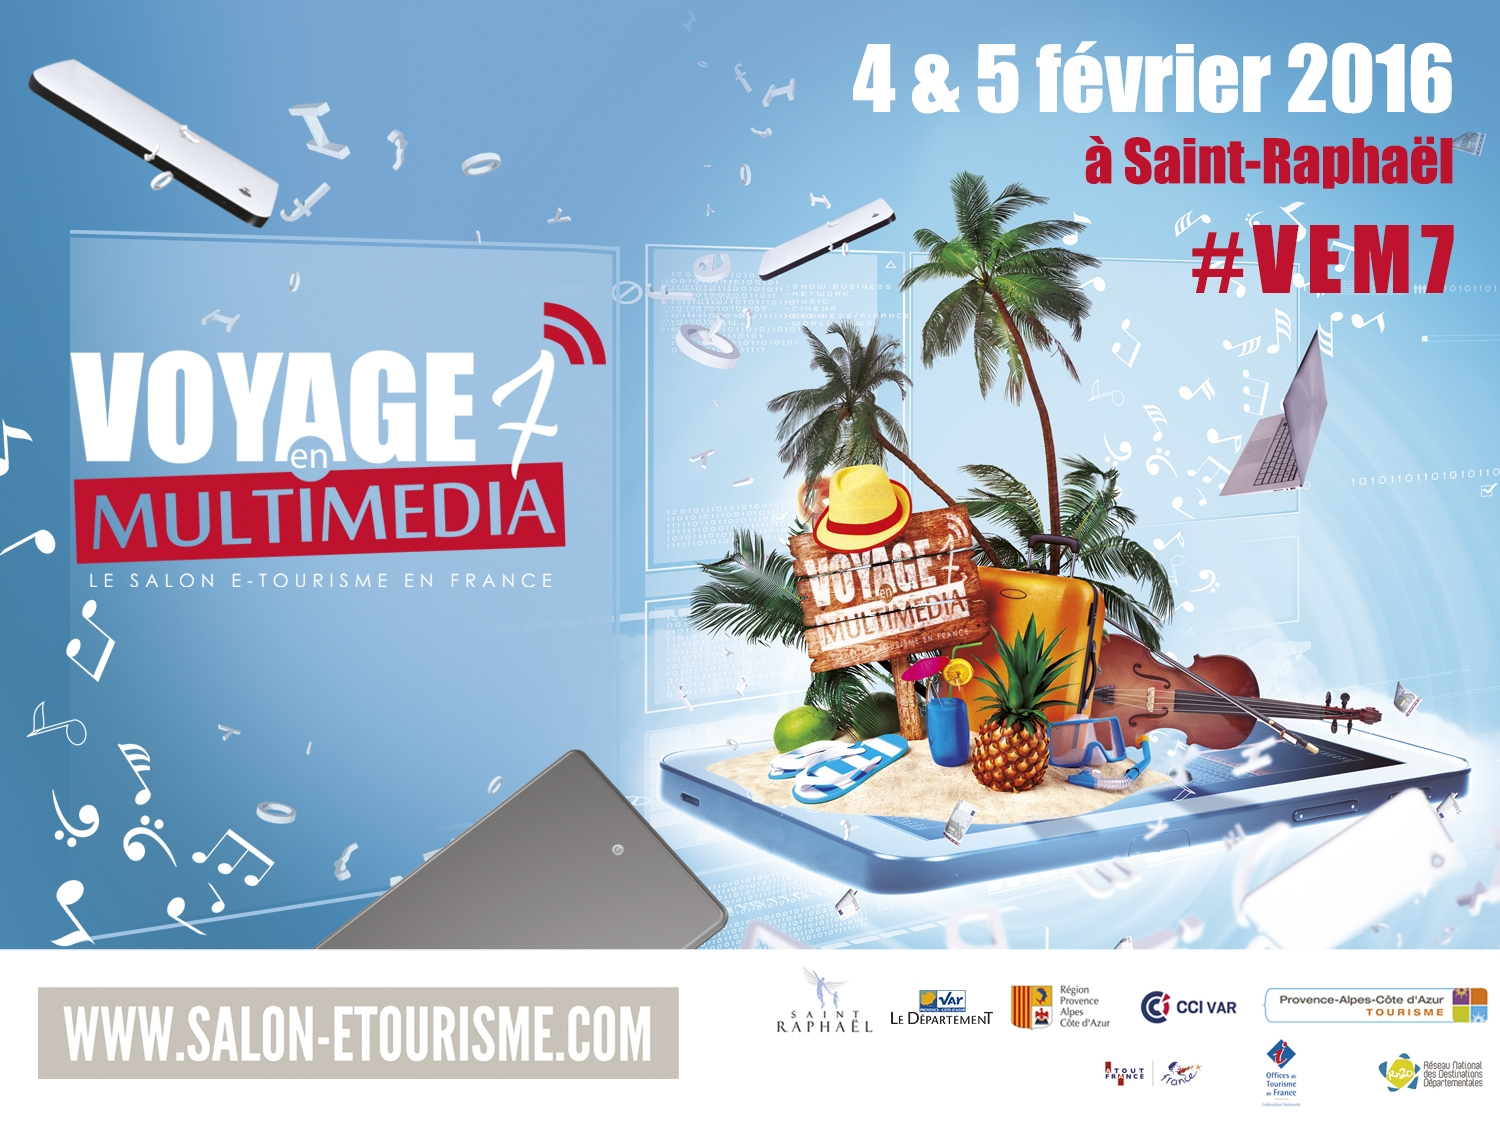 Salon e tourisme vem7 d collage imminent est rel for Salon e tourisme